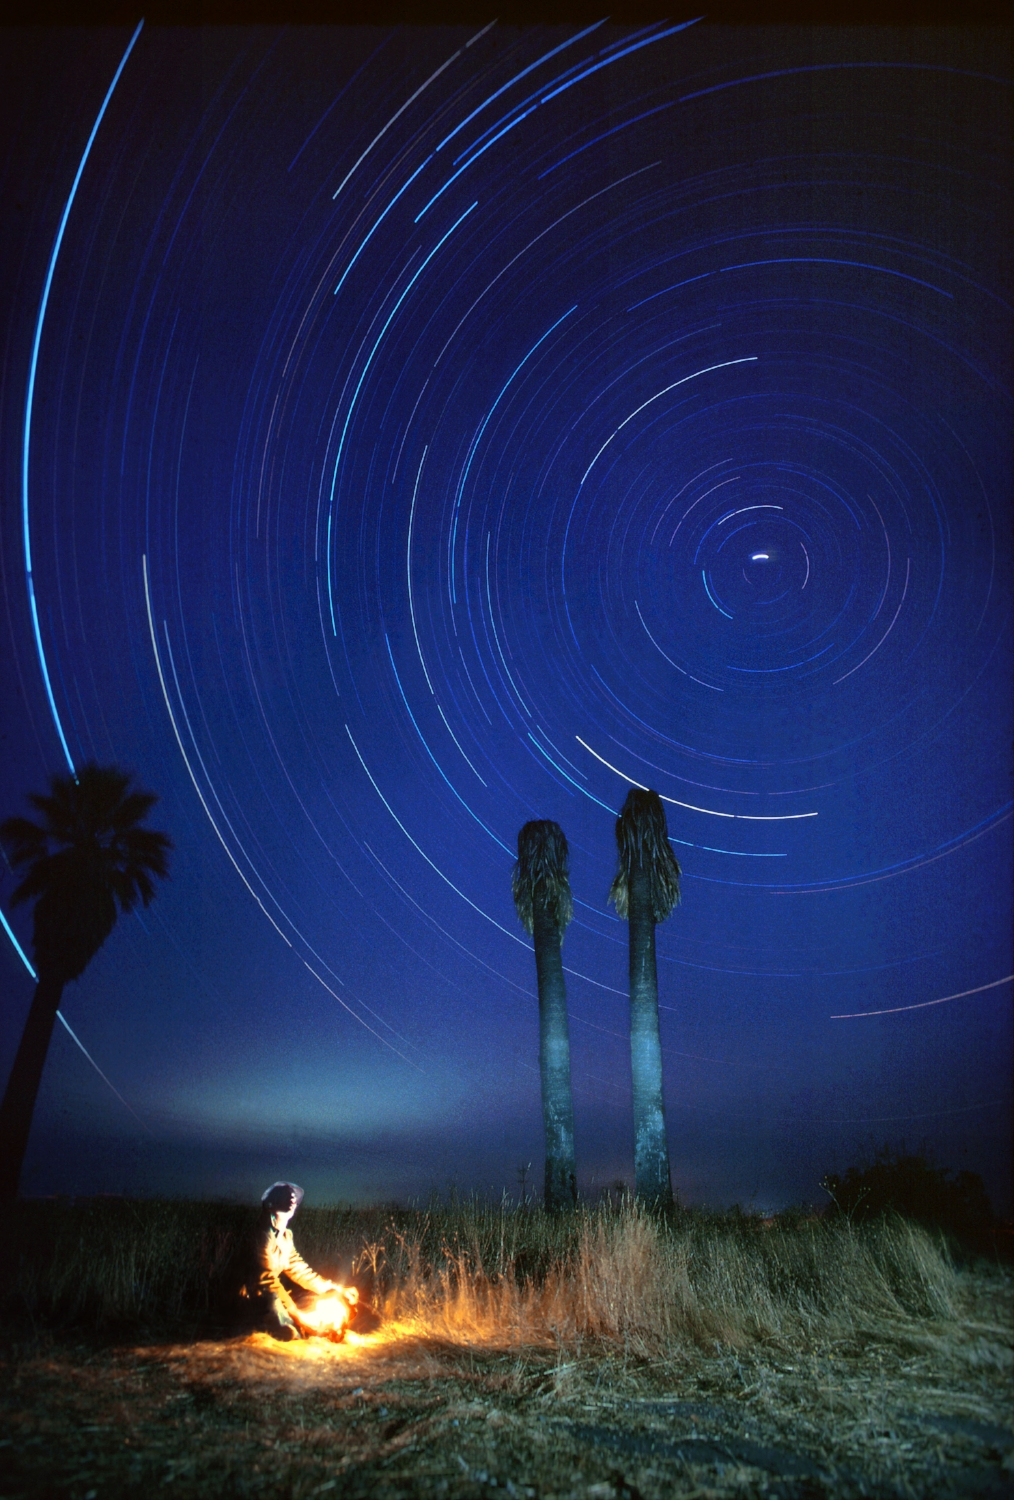 Due the Earth's rotation during a four hour exposure, the stars appear to spin around Polaris (the north star) in Lincoln, CA.